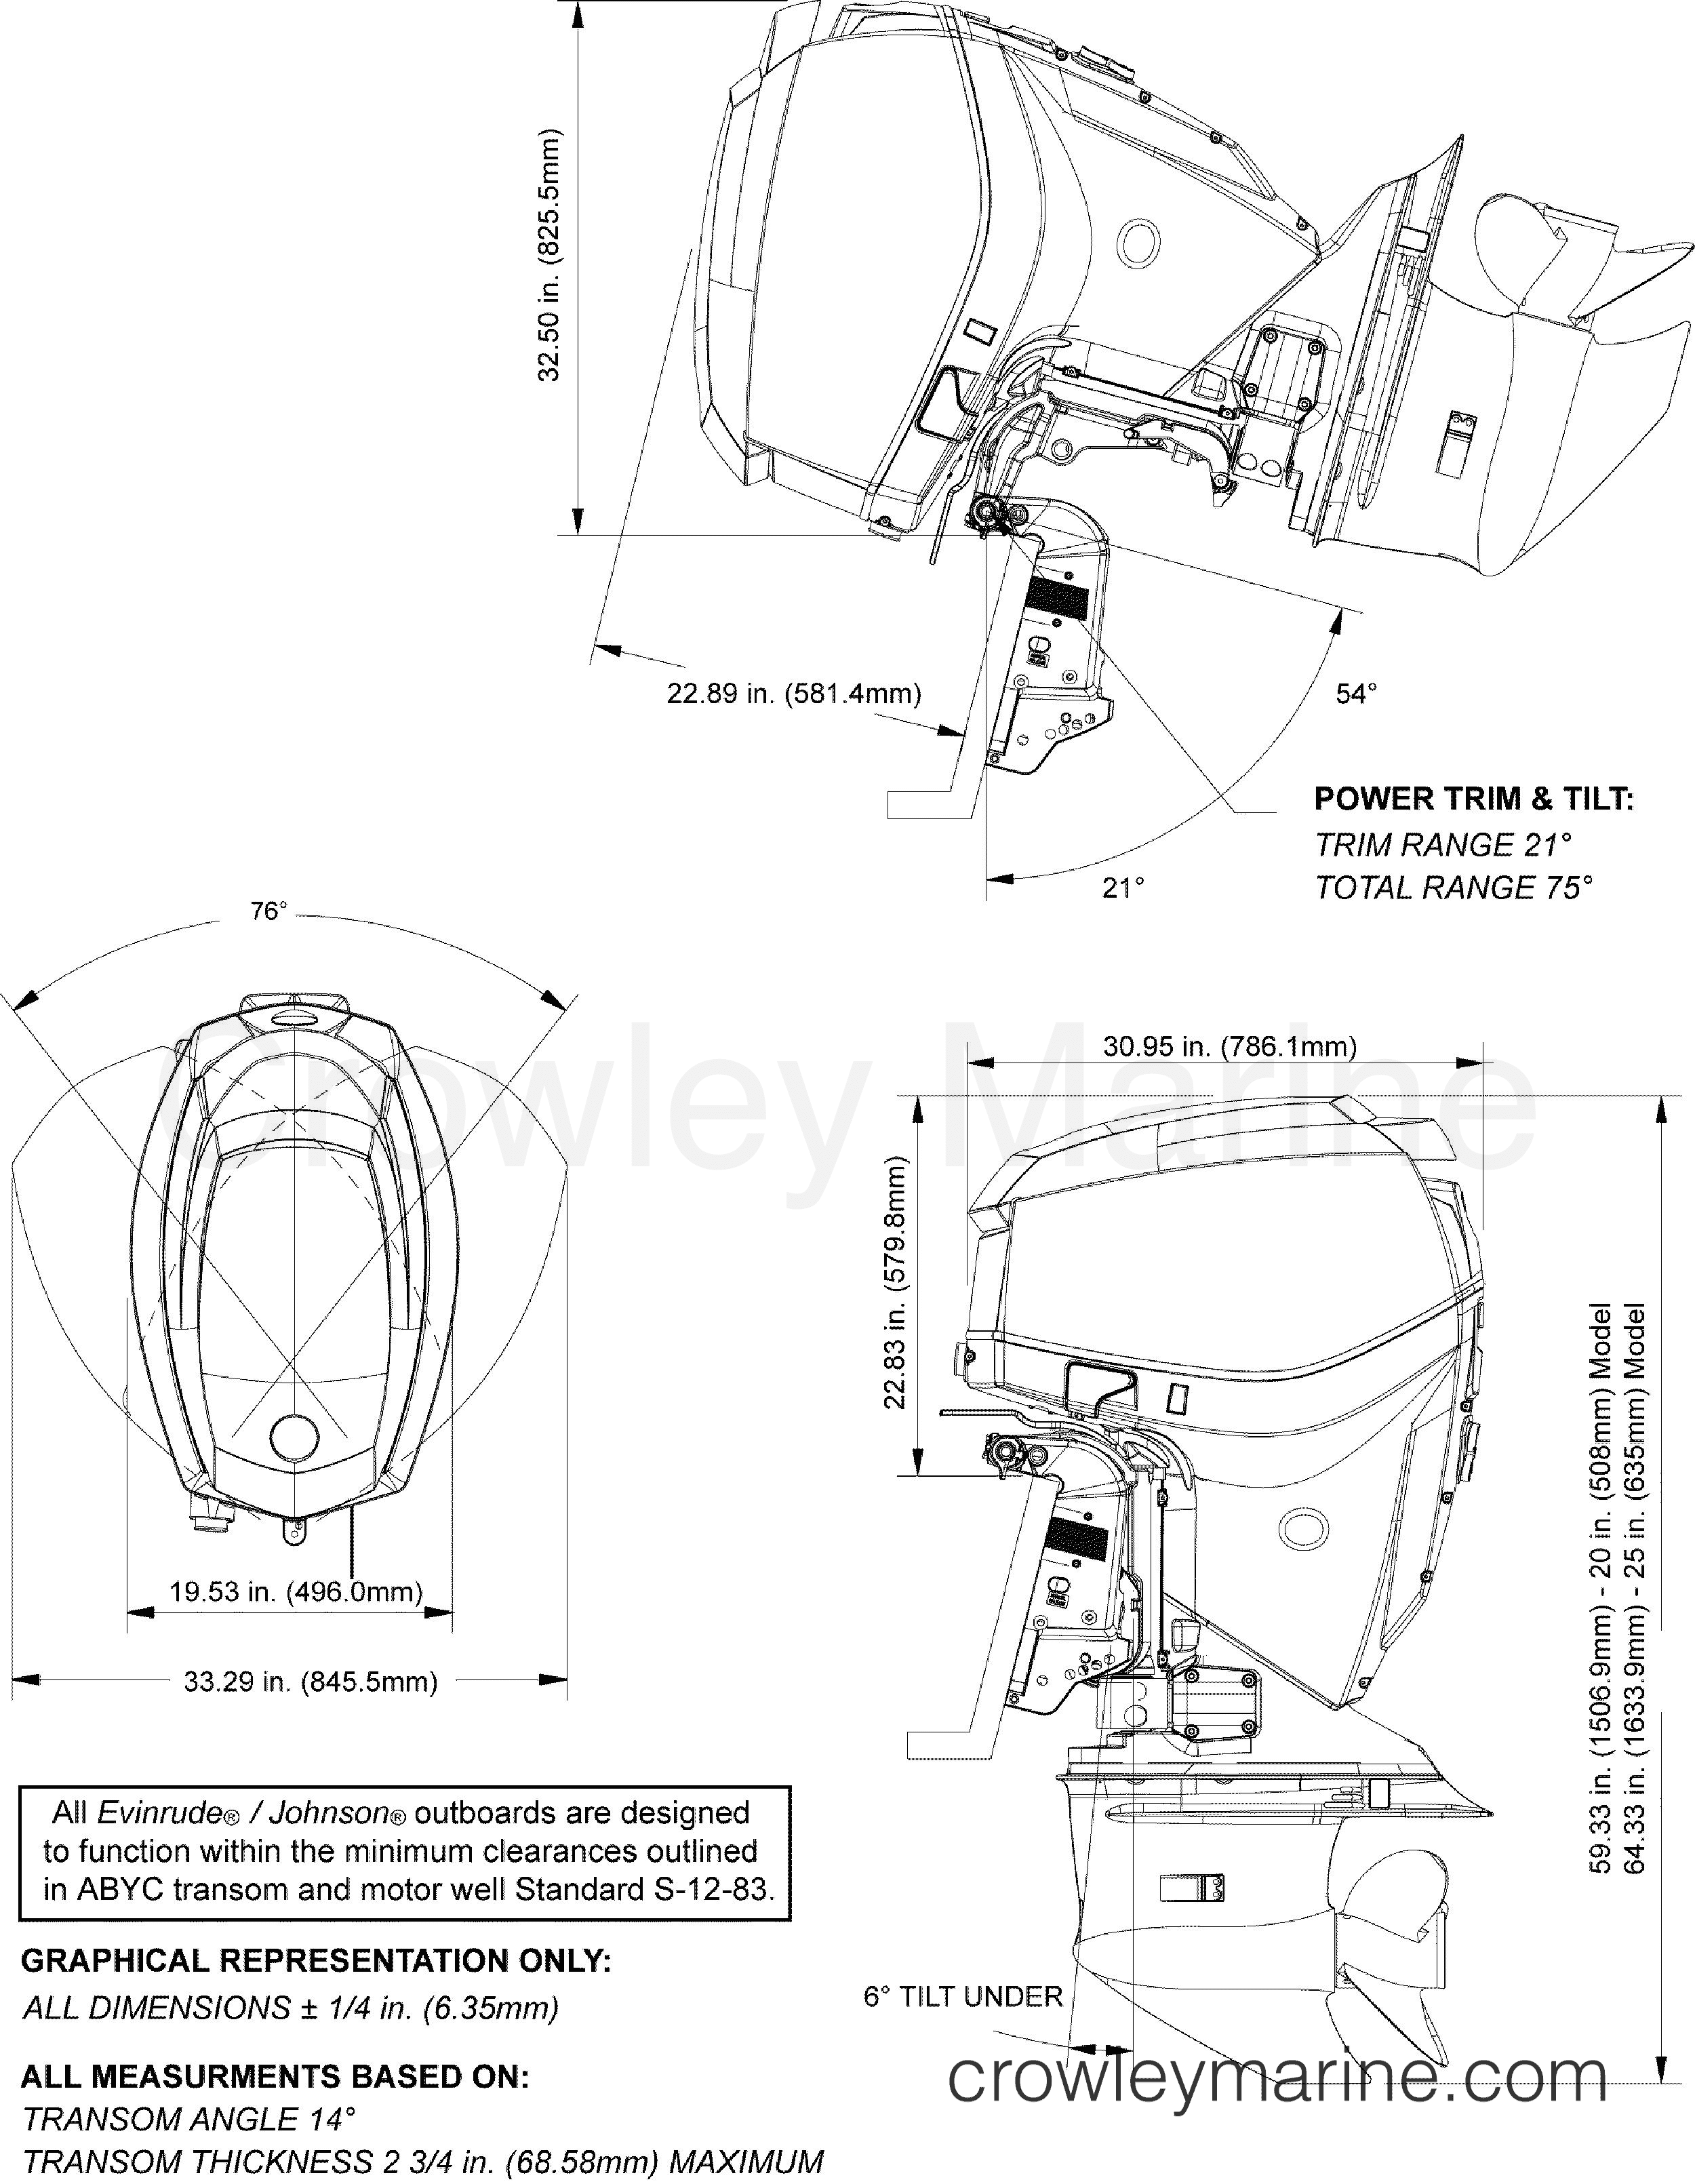 2012 Evinrude Outboards 130 - E130DPLINA PROFILE DRAWING section